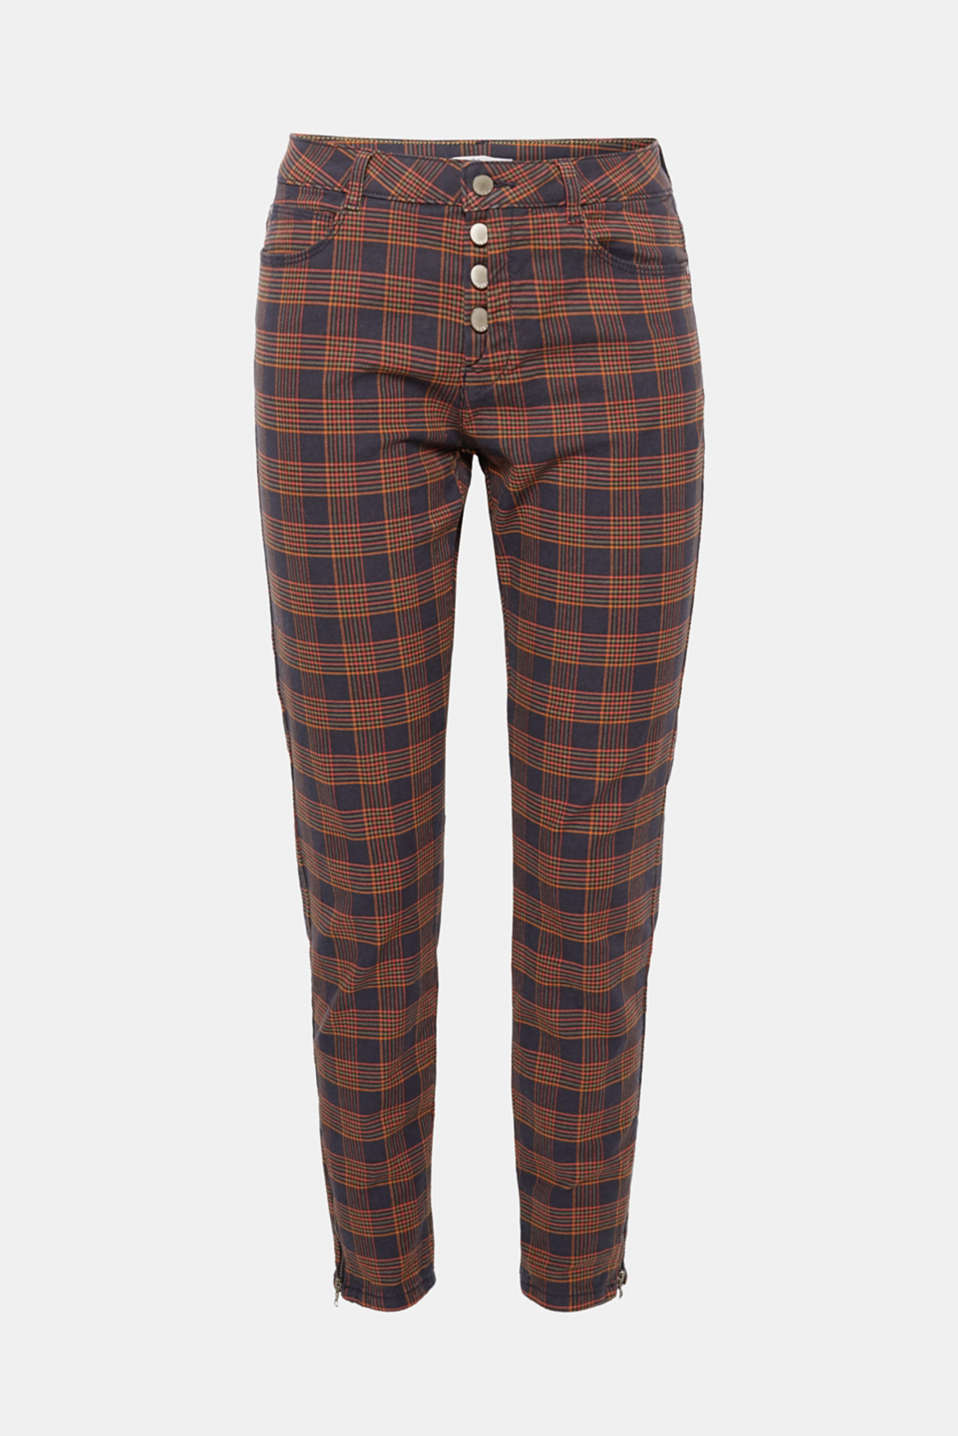 The colourful check pattern and semi-concealed button placket give these wonderfully soft stretch trousers their playful look!